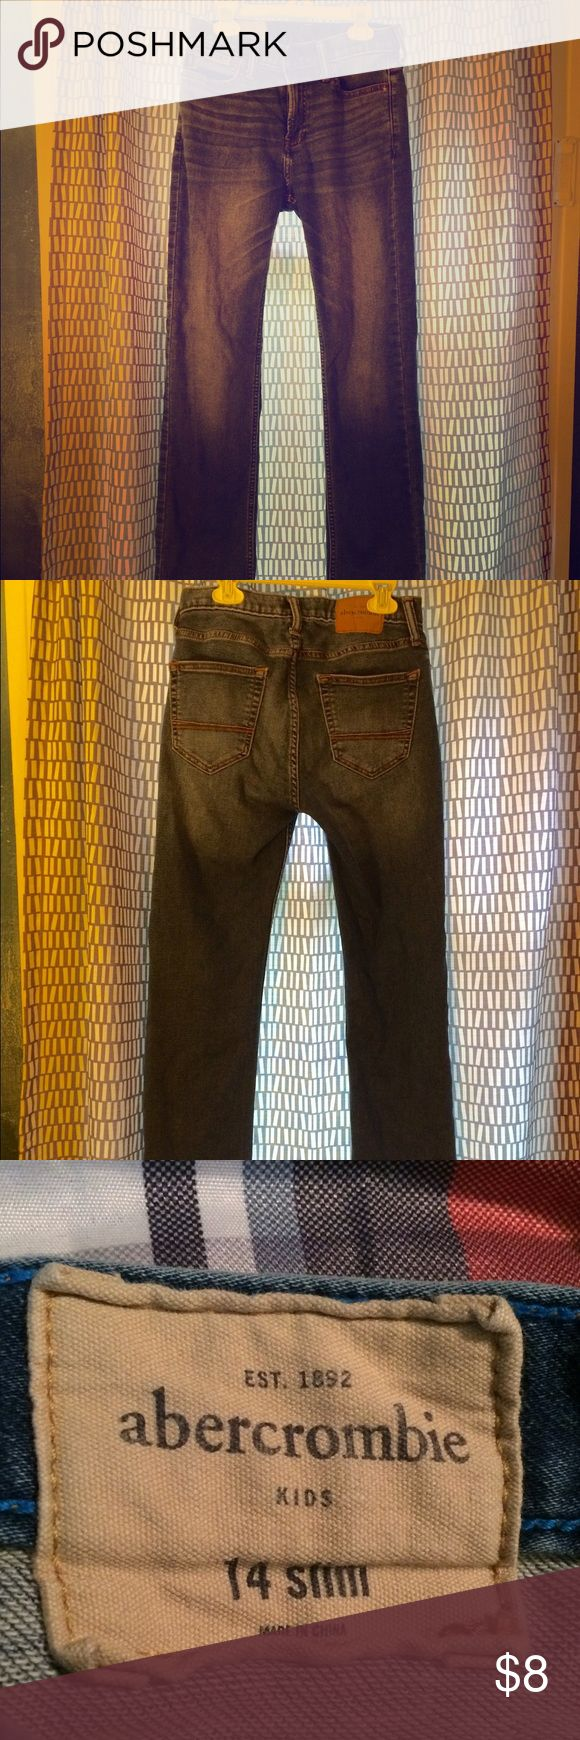 Abercrombie Jeans for Kids Size 14 Slim Soft jeans, size 14 slim kids. Gently used. Abercrombie & Fitch Bottoms Jeans